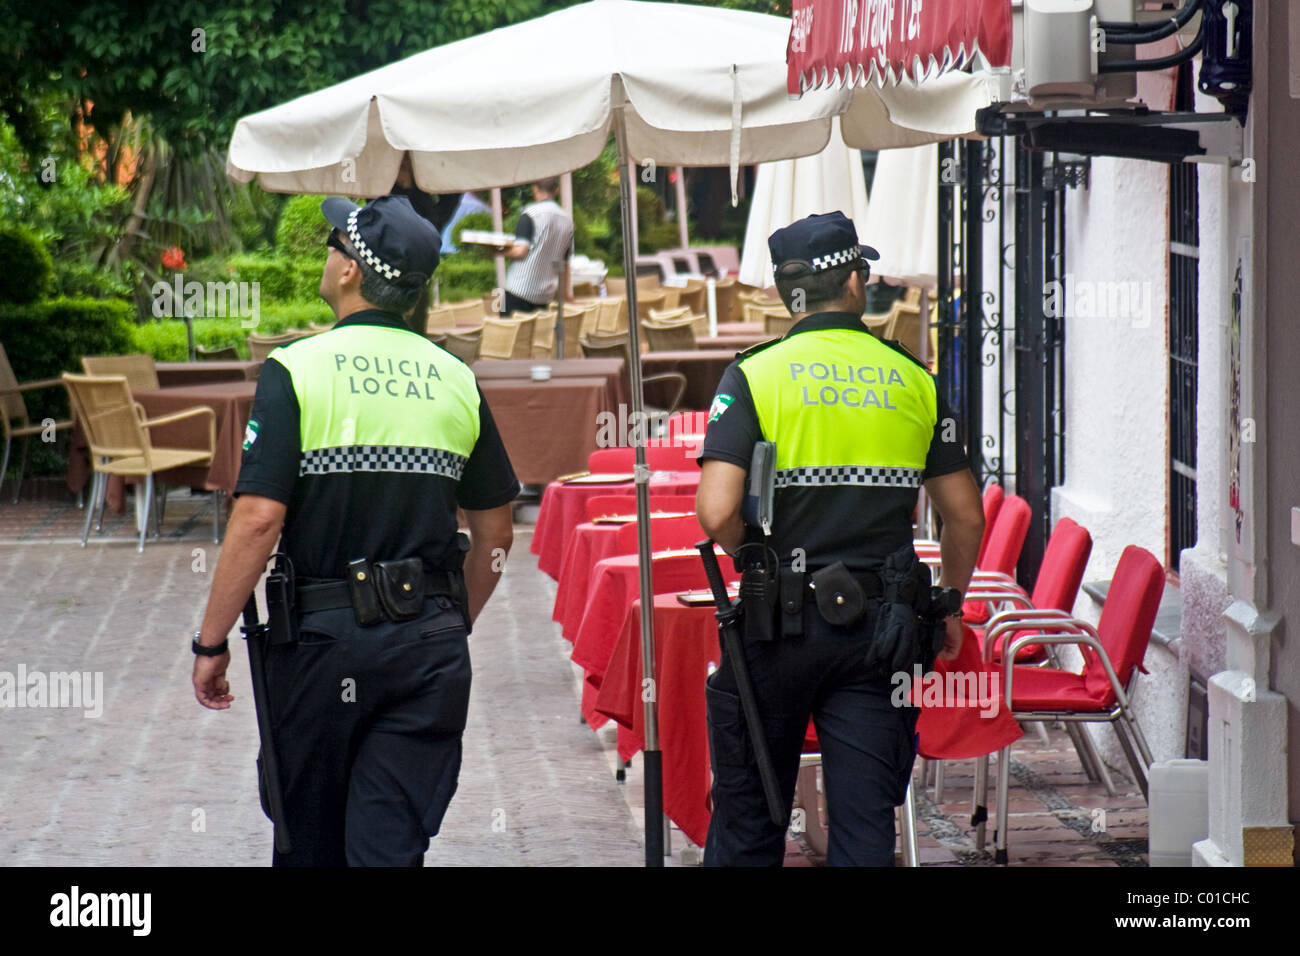 Local police patrolling in the old town, Marbella, Costa del Sol, Andalucia, Spain - Stock Image